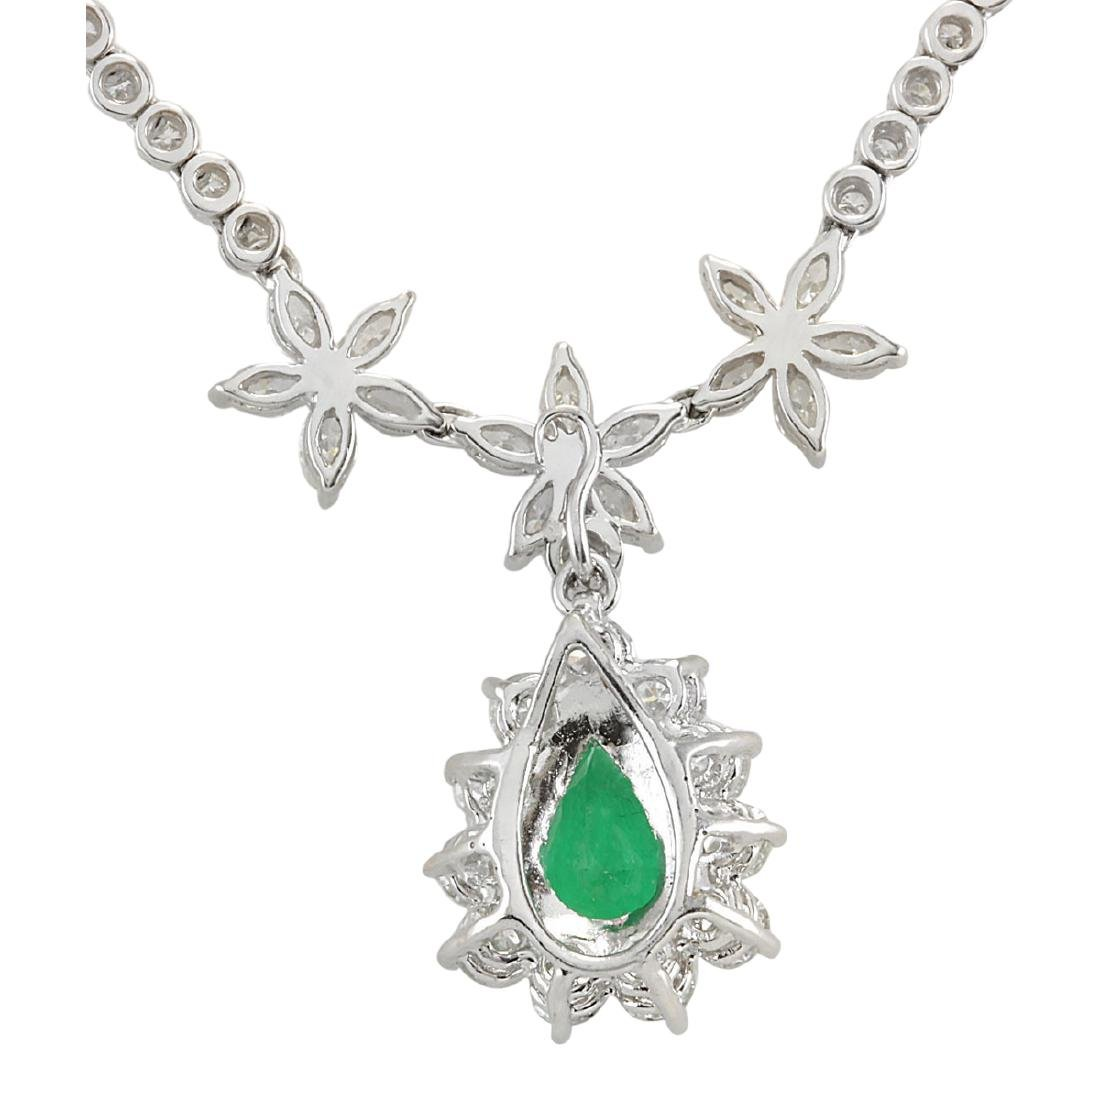 12.43 CTW Natural Emerald And Diamond Necklace In 18K - 2